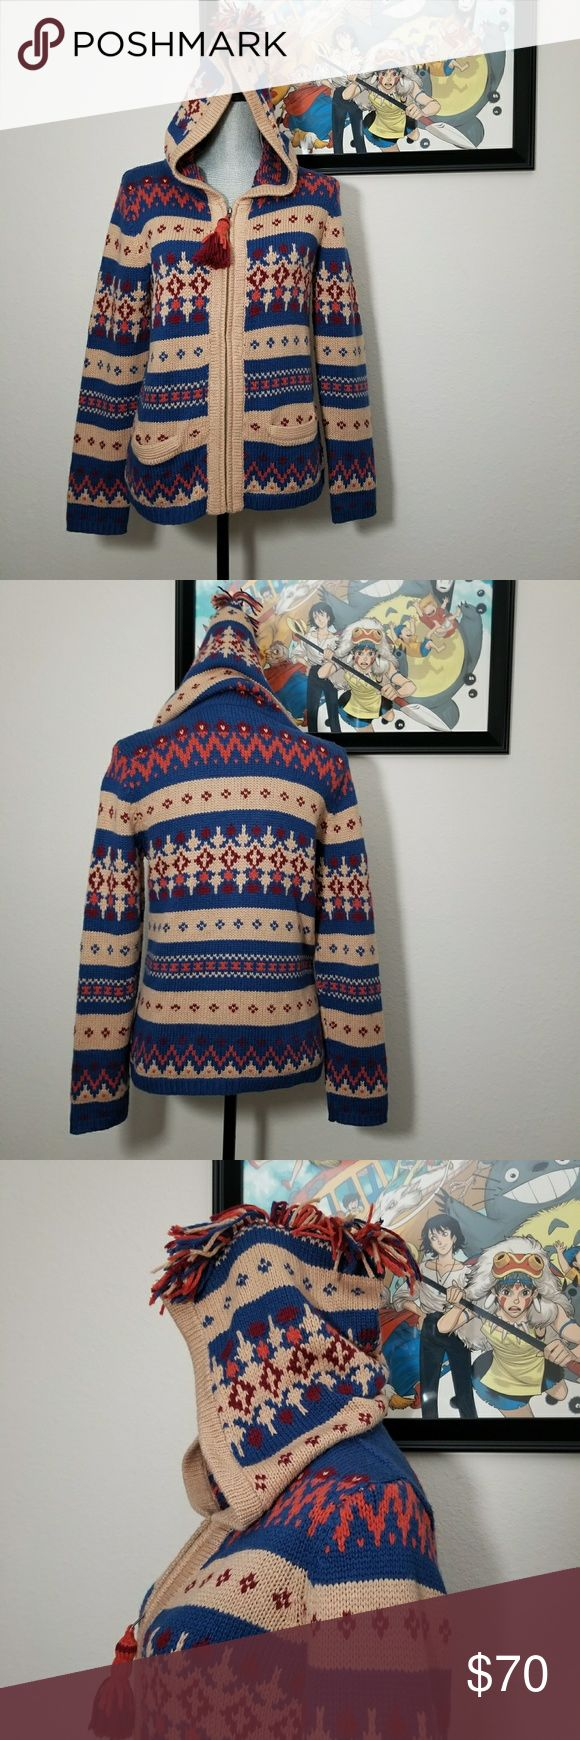 """Anthro Sparrow fairisle hooded sweater Large Large hooded zip up sweater in fairisle print. Full zip with tassel charm. Hood has mohawk fringe. 2 small front pockets. Incredibly soft and warm. Excellent used condition. Flat lay measurements: Approximately 20"""" bust, 15"""" from underarm to hem. Anthropologie Sweaters"""